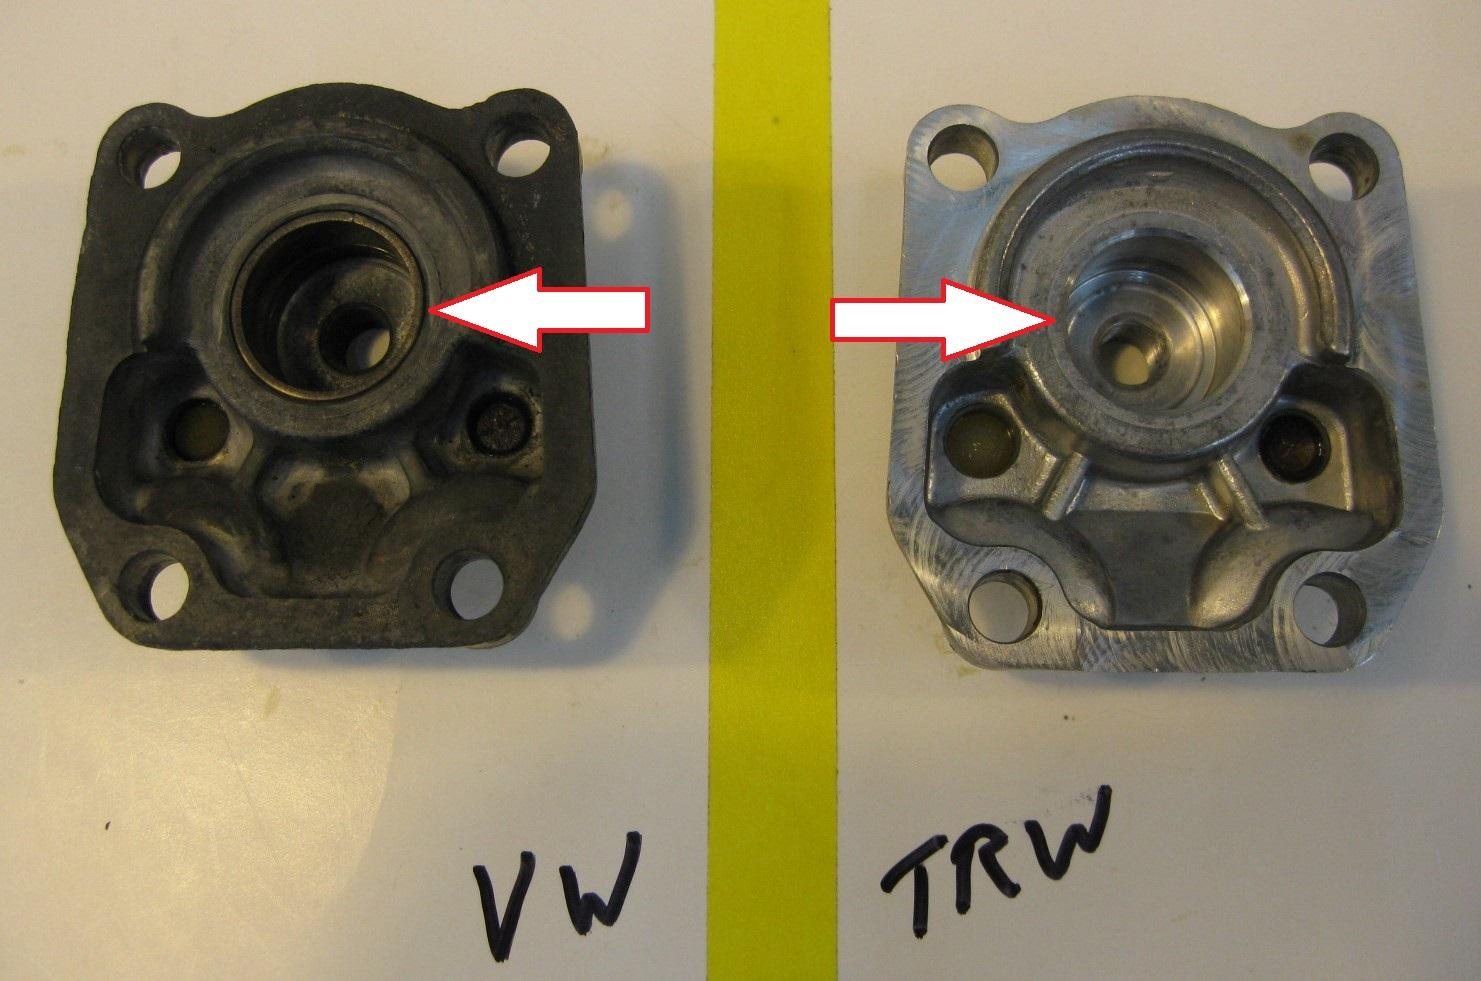 TheSamba com :: Type 3 - View topic - Steering Boxes: VW vs  TRW